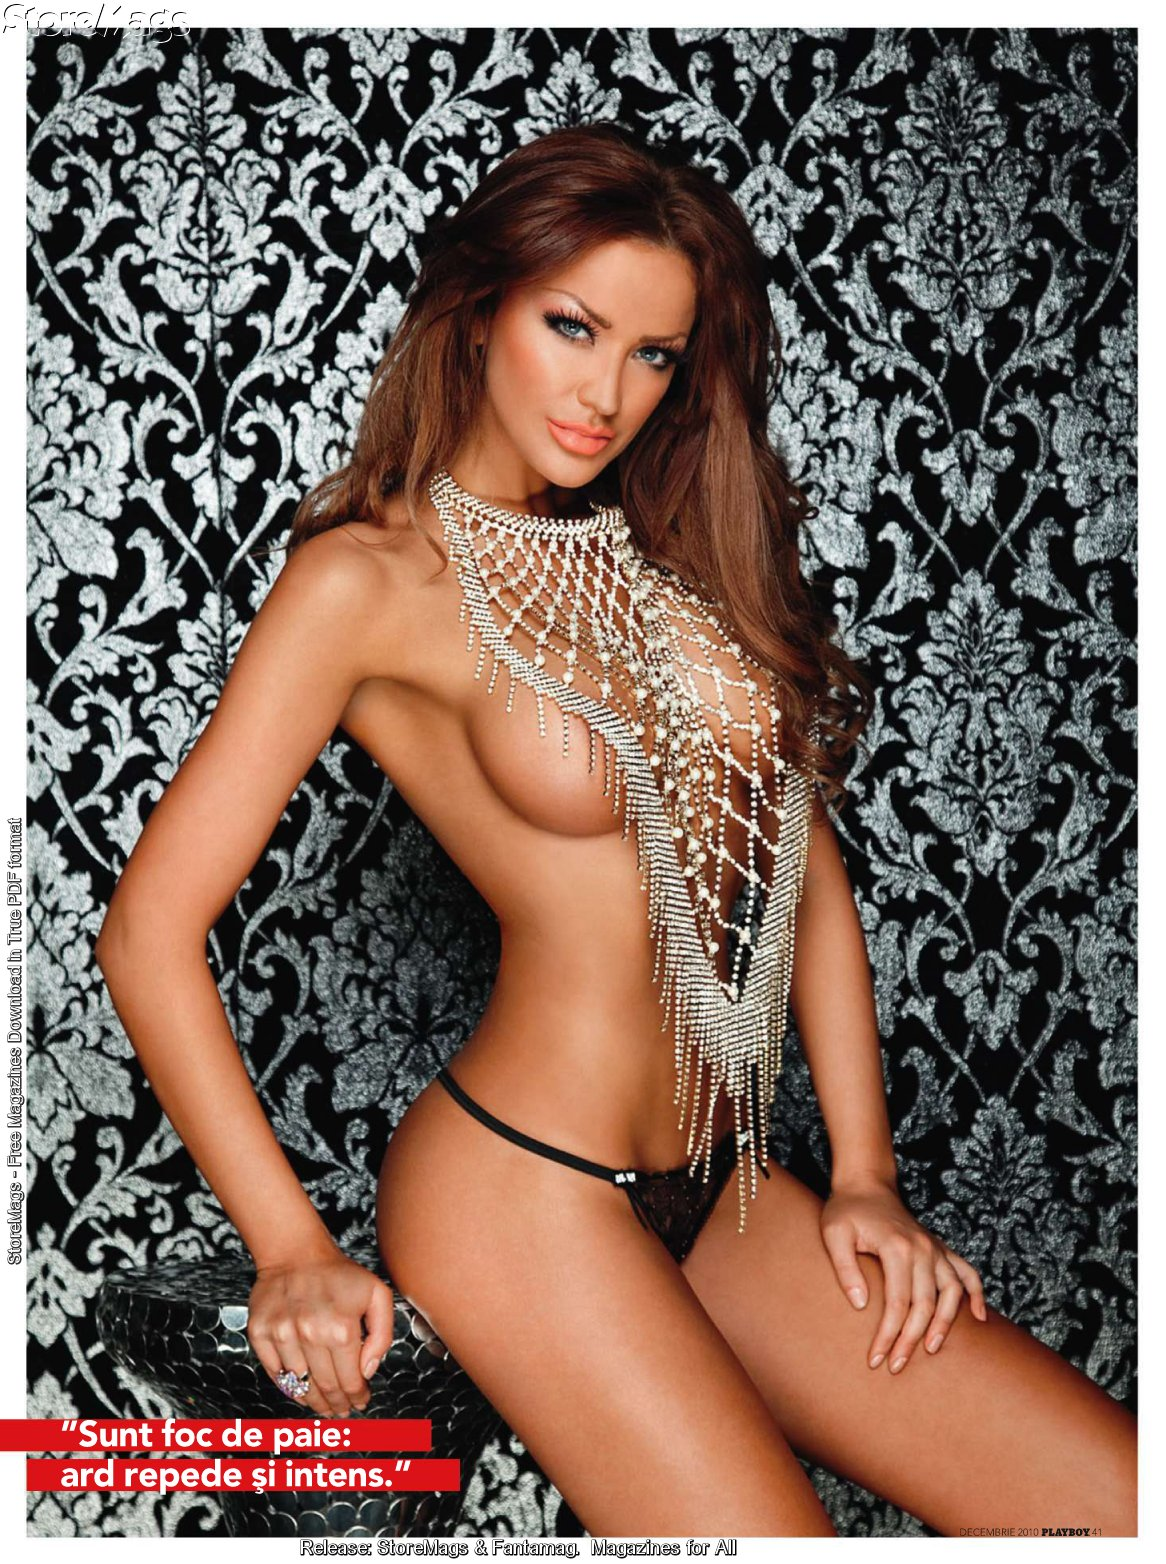 unratedgossip playmate romania fully naked and hot